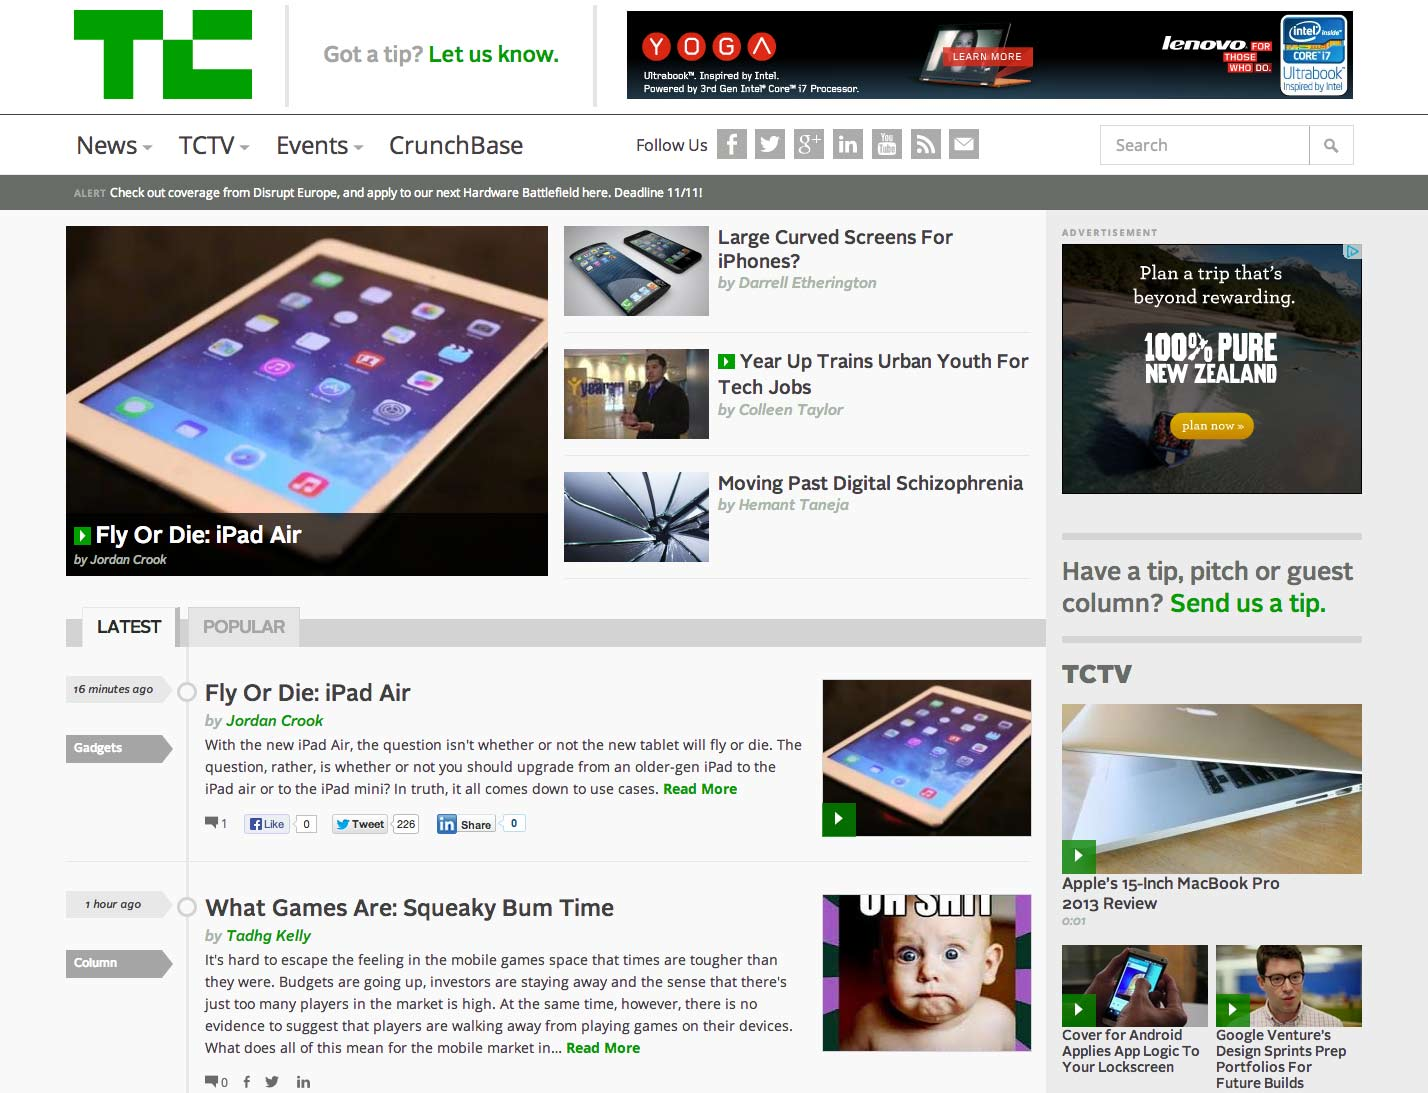 TechCrunch responsive design